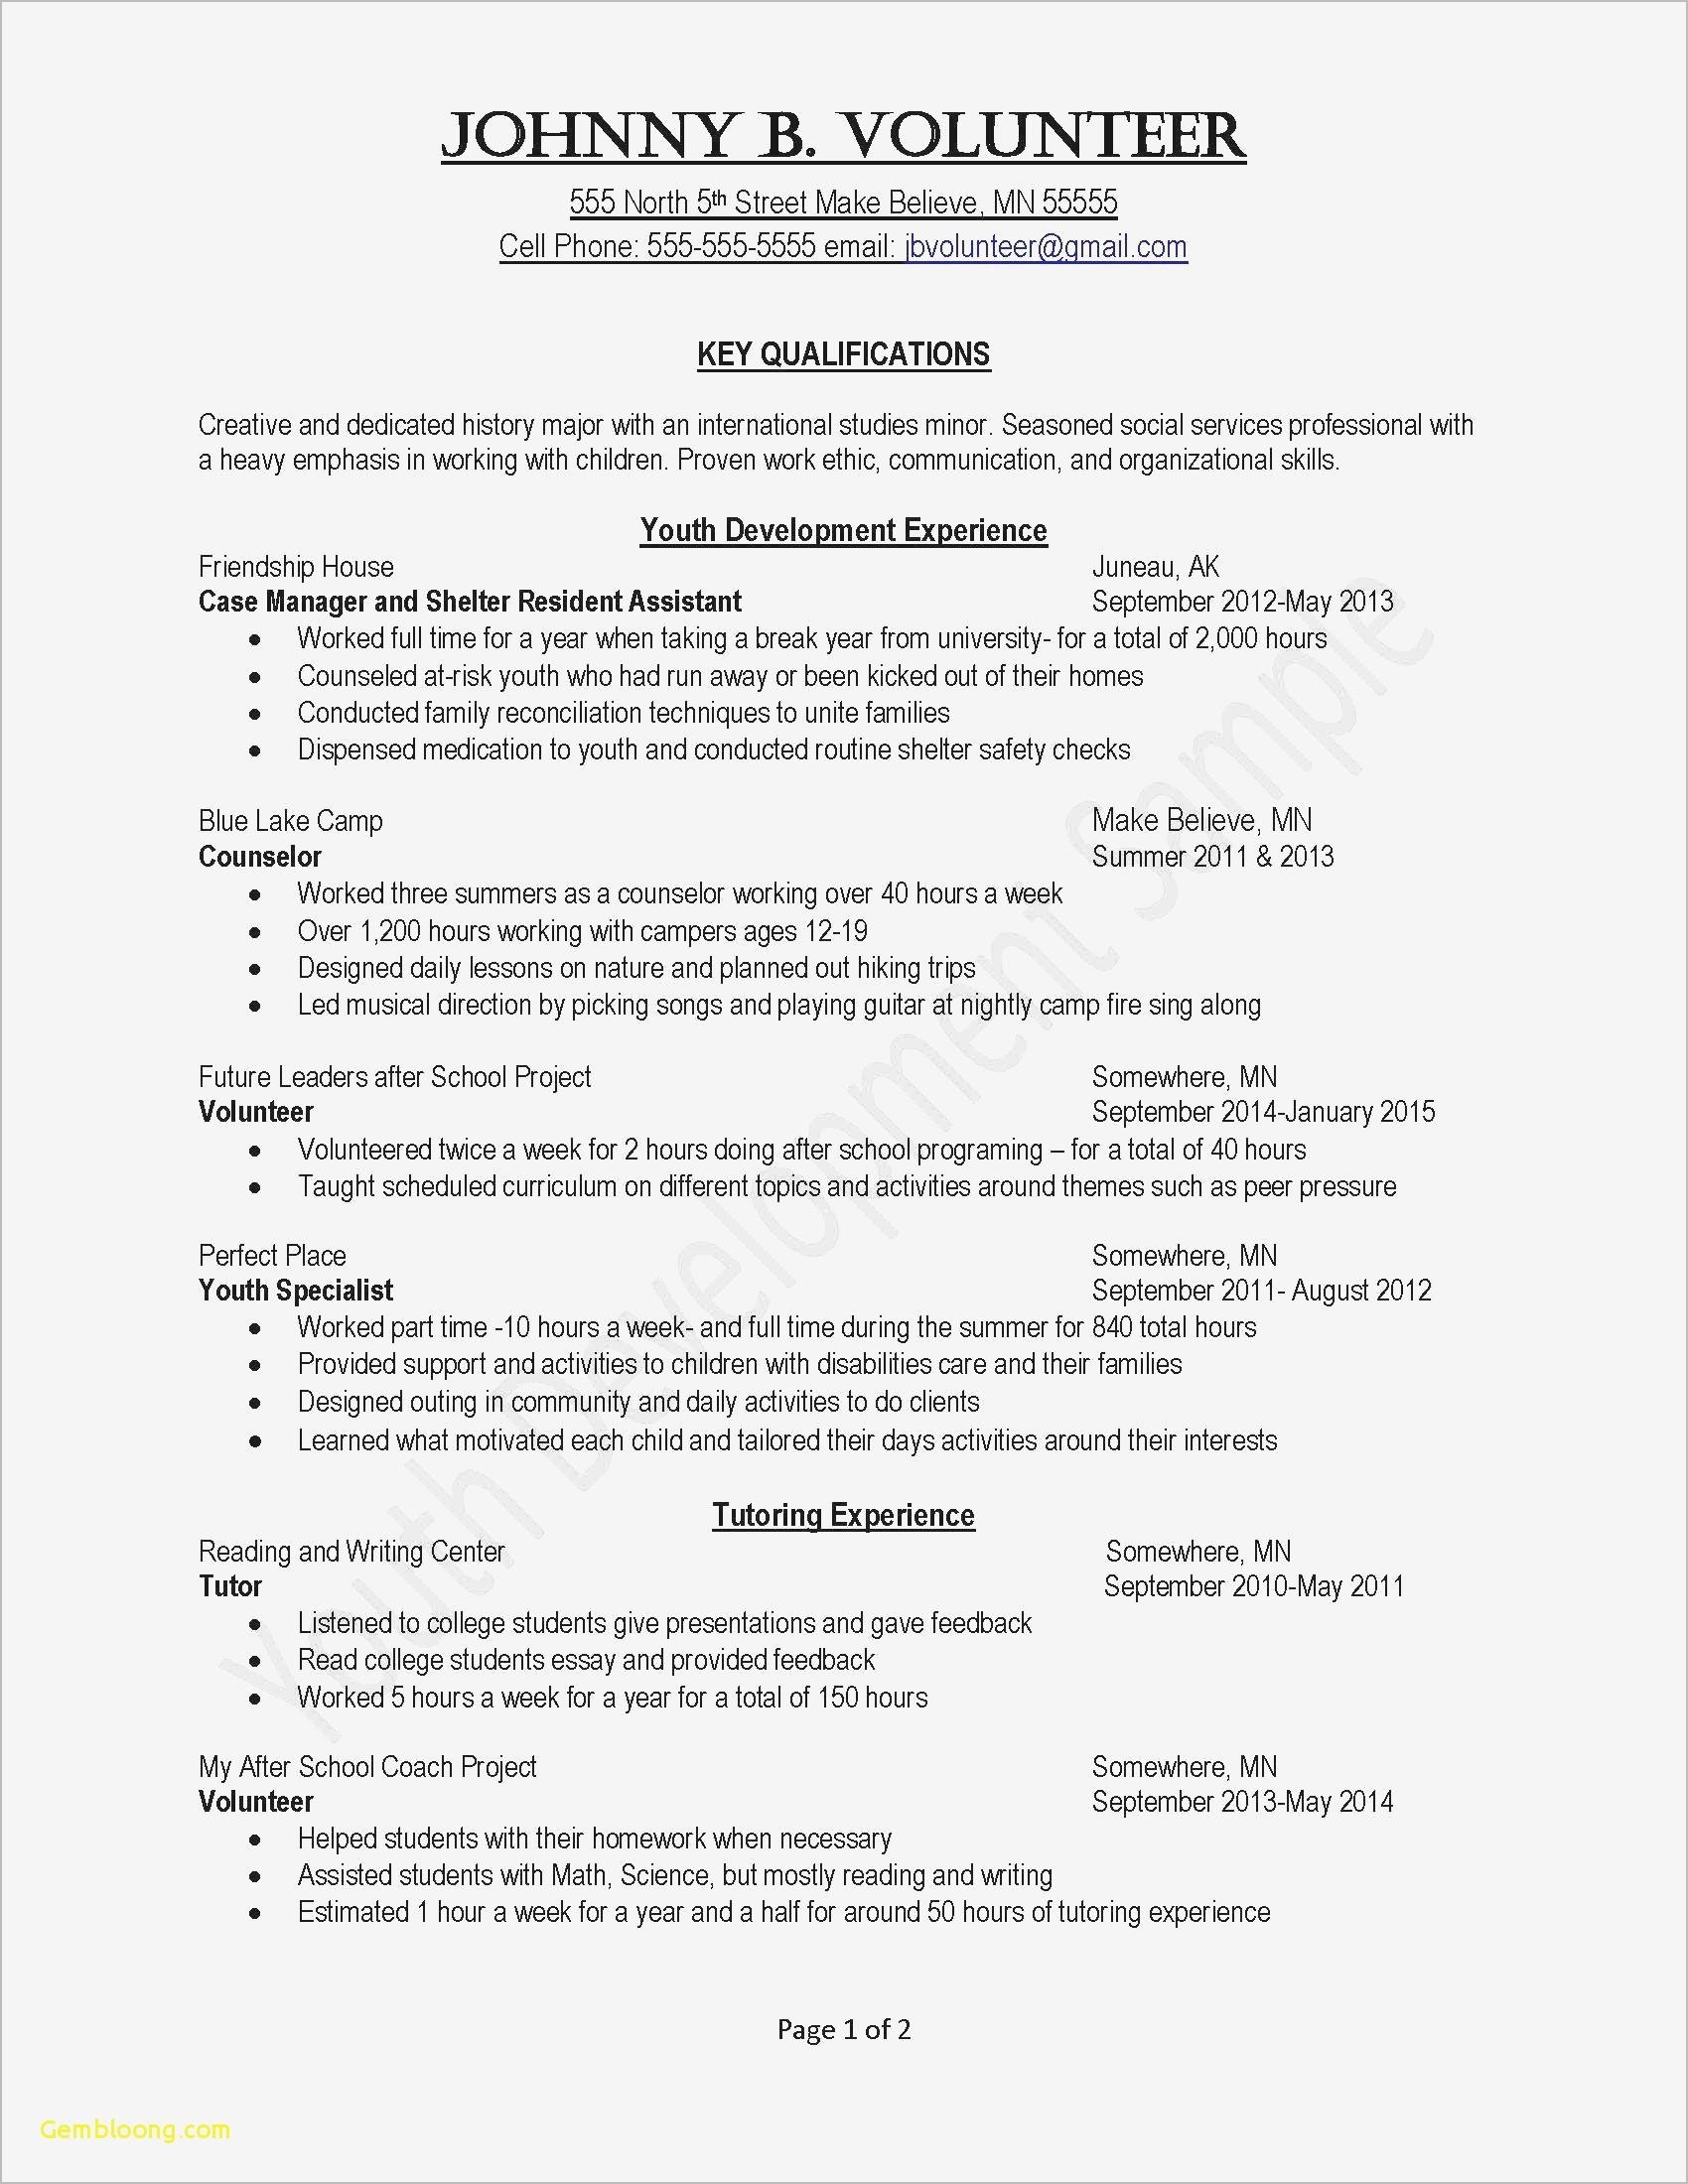 Company Offer Letter Template - Job Fer Letter Template Us Copy Od Consultant Cover Letter Fungram